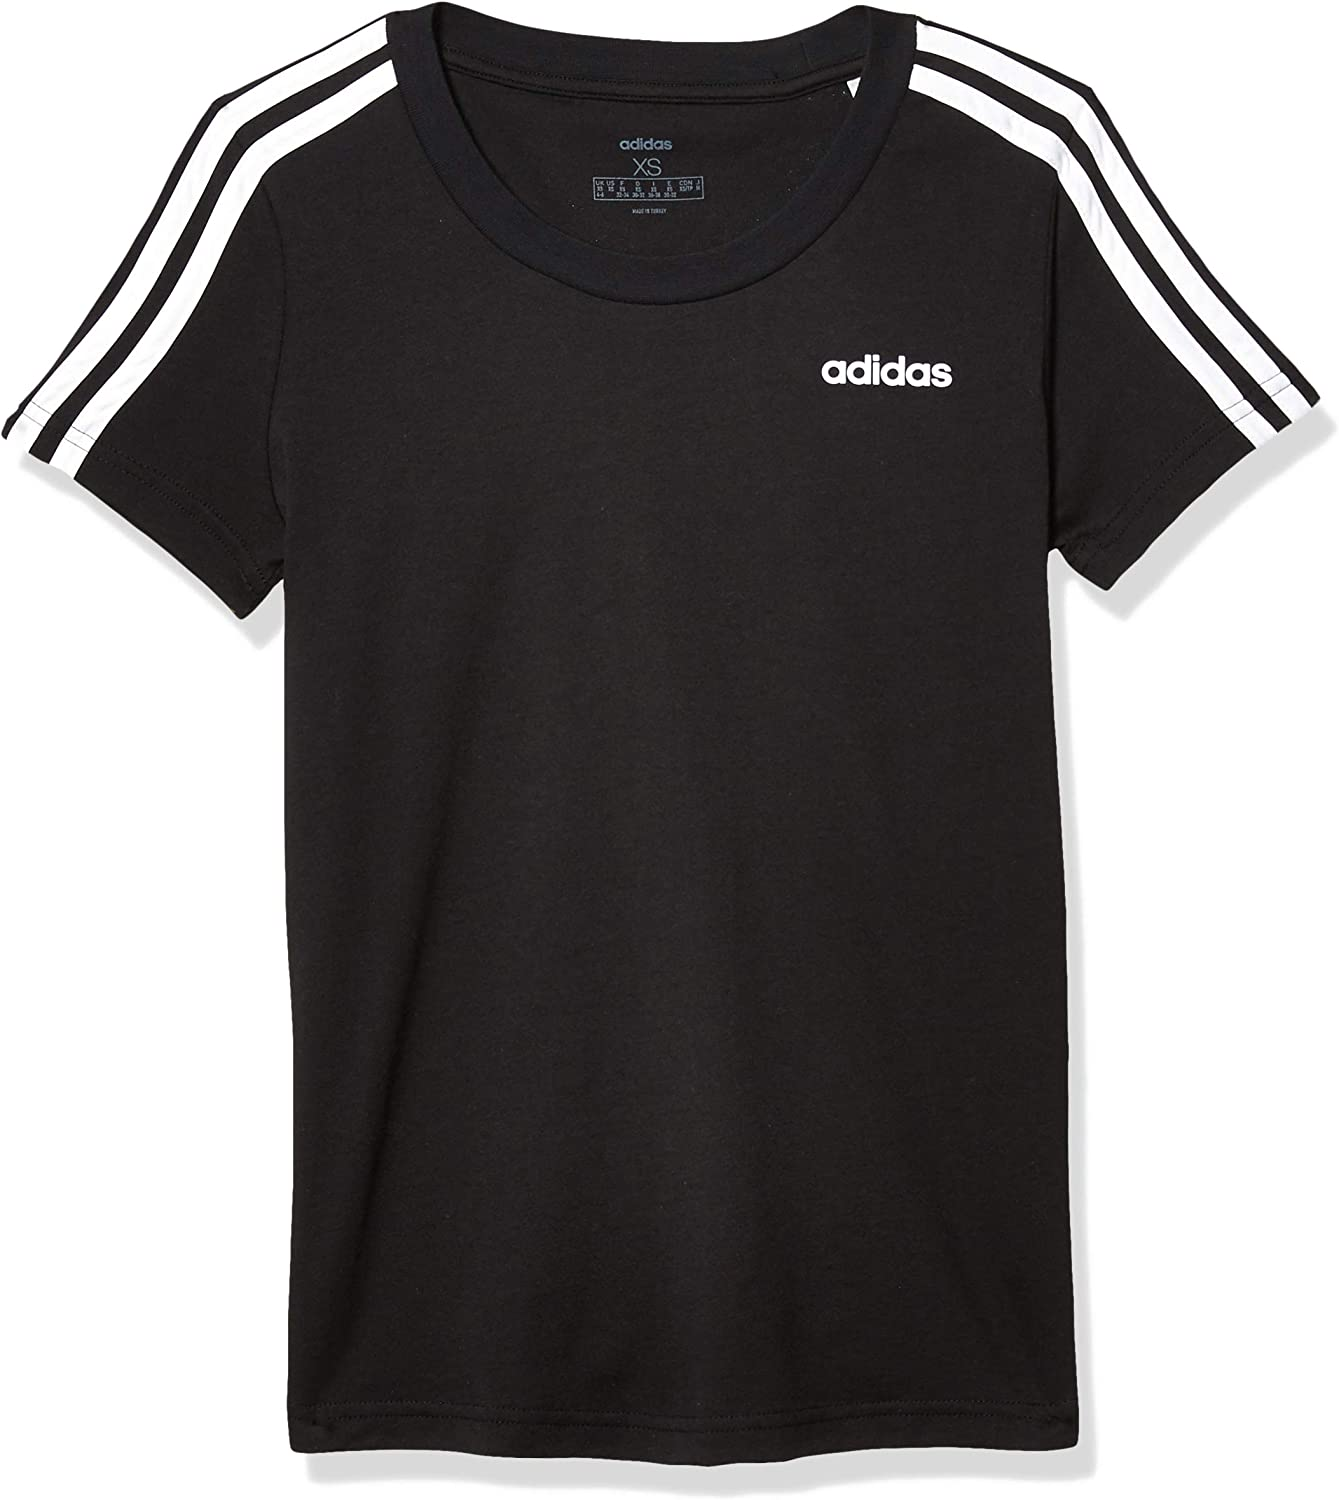 adidas Women's Essentials 3-Stripes Tee